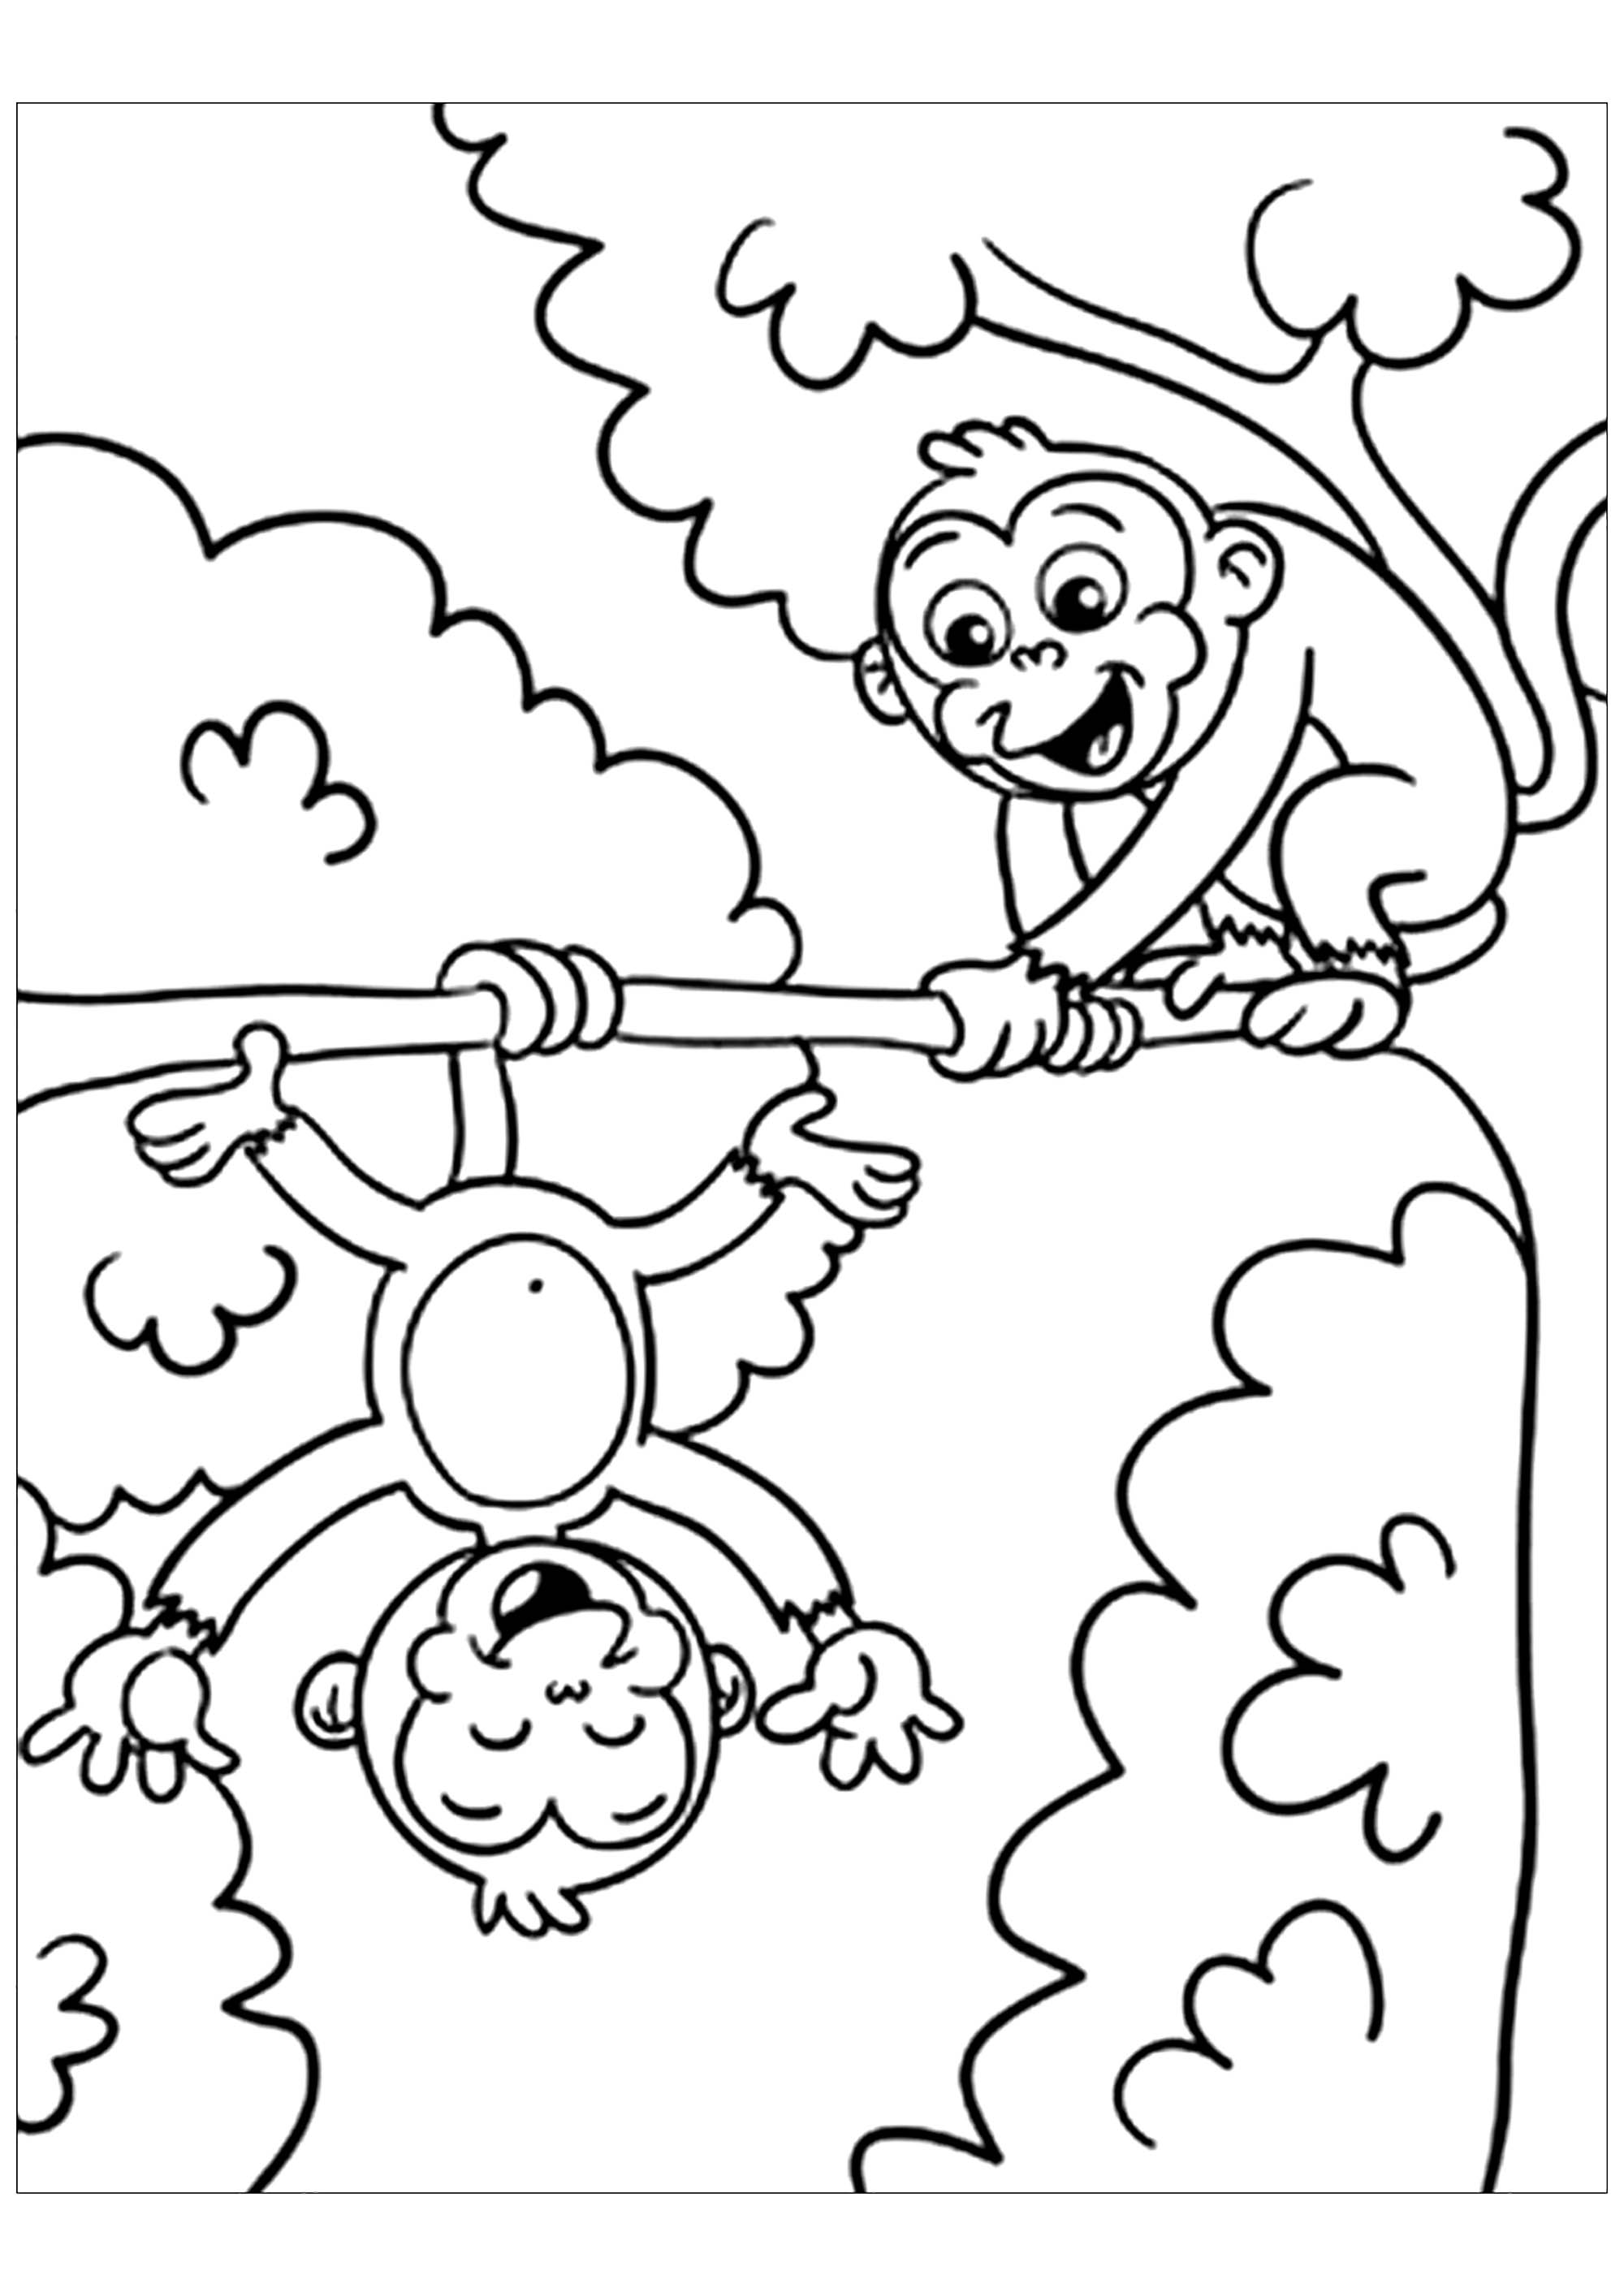 monkey coloring pictures monkeys to color for kids monkeys kids coloring pages pictures monkey coloring